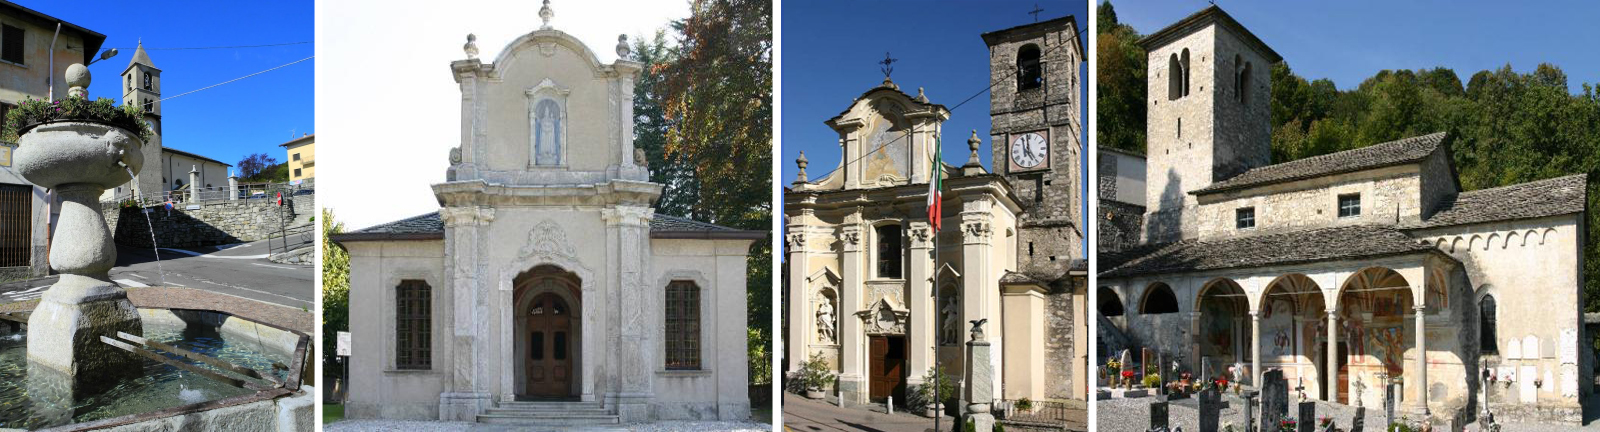 Chiese Lanzo Scaria